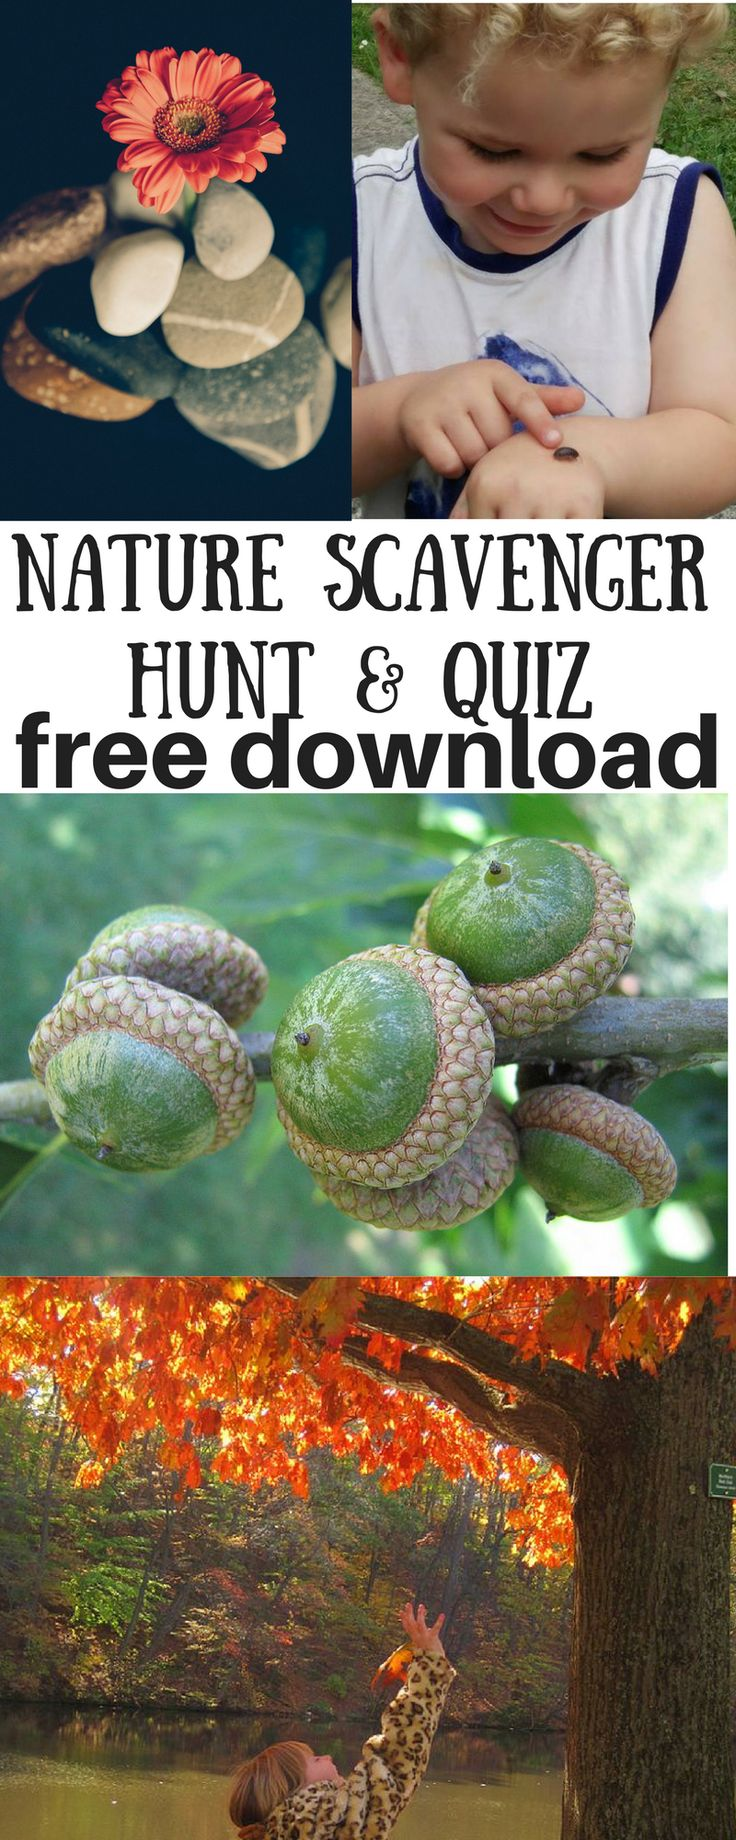 Scavenger Hunt and Quiz for kids - Nature Science - Backyard fun